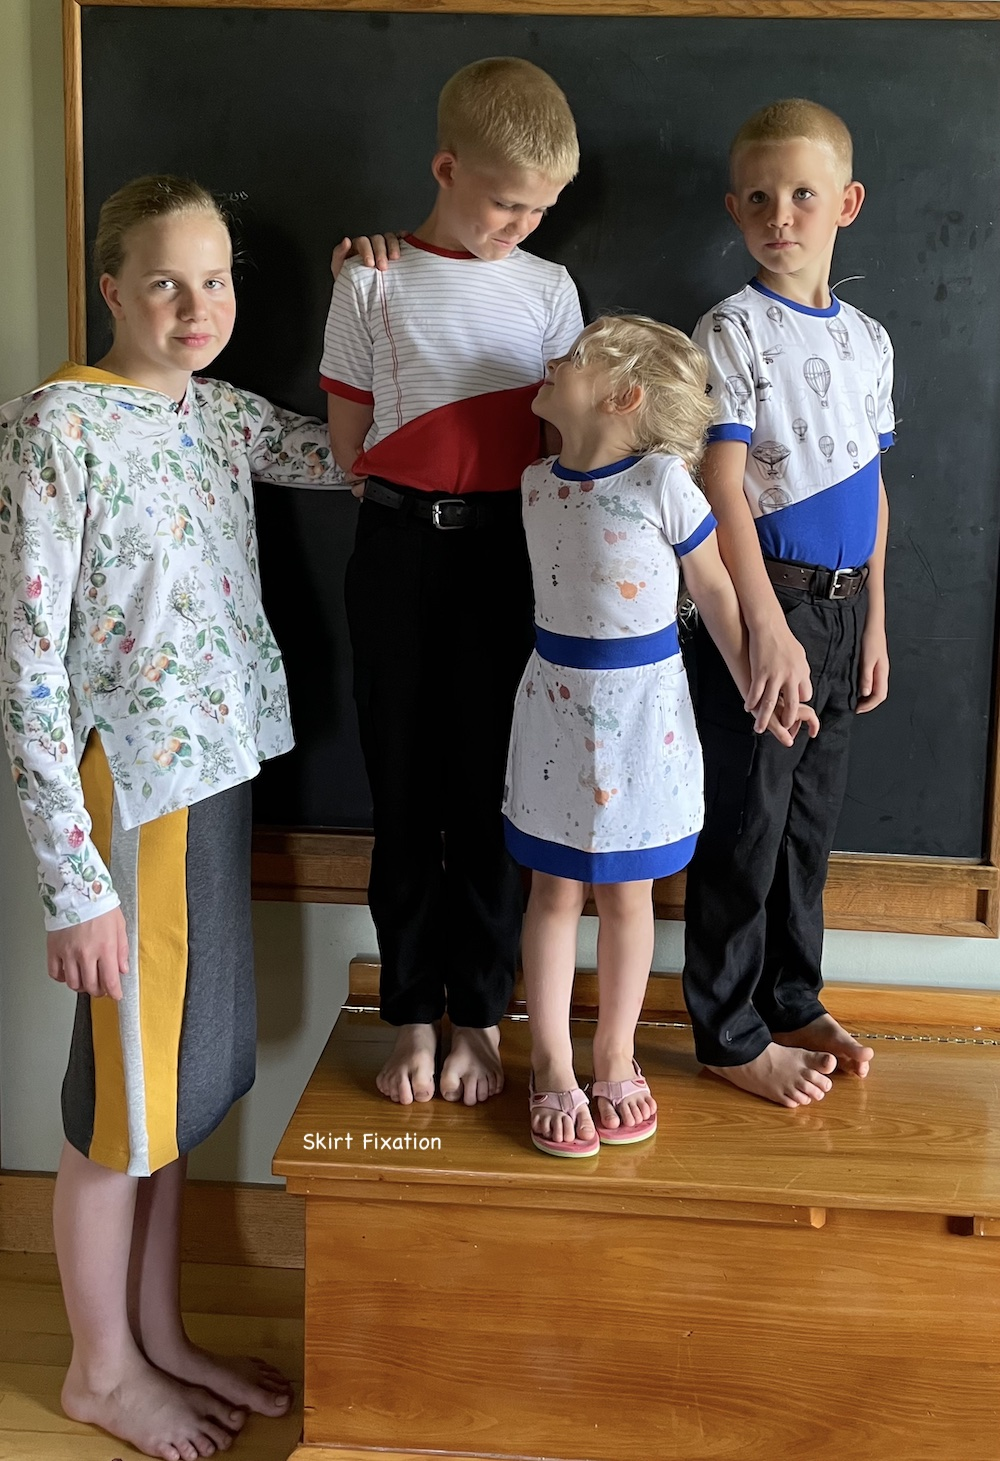 Back to School clothing inspiration from Skirt Fixation.